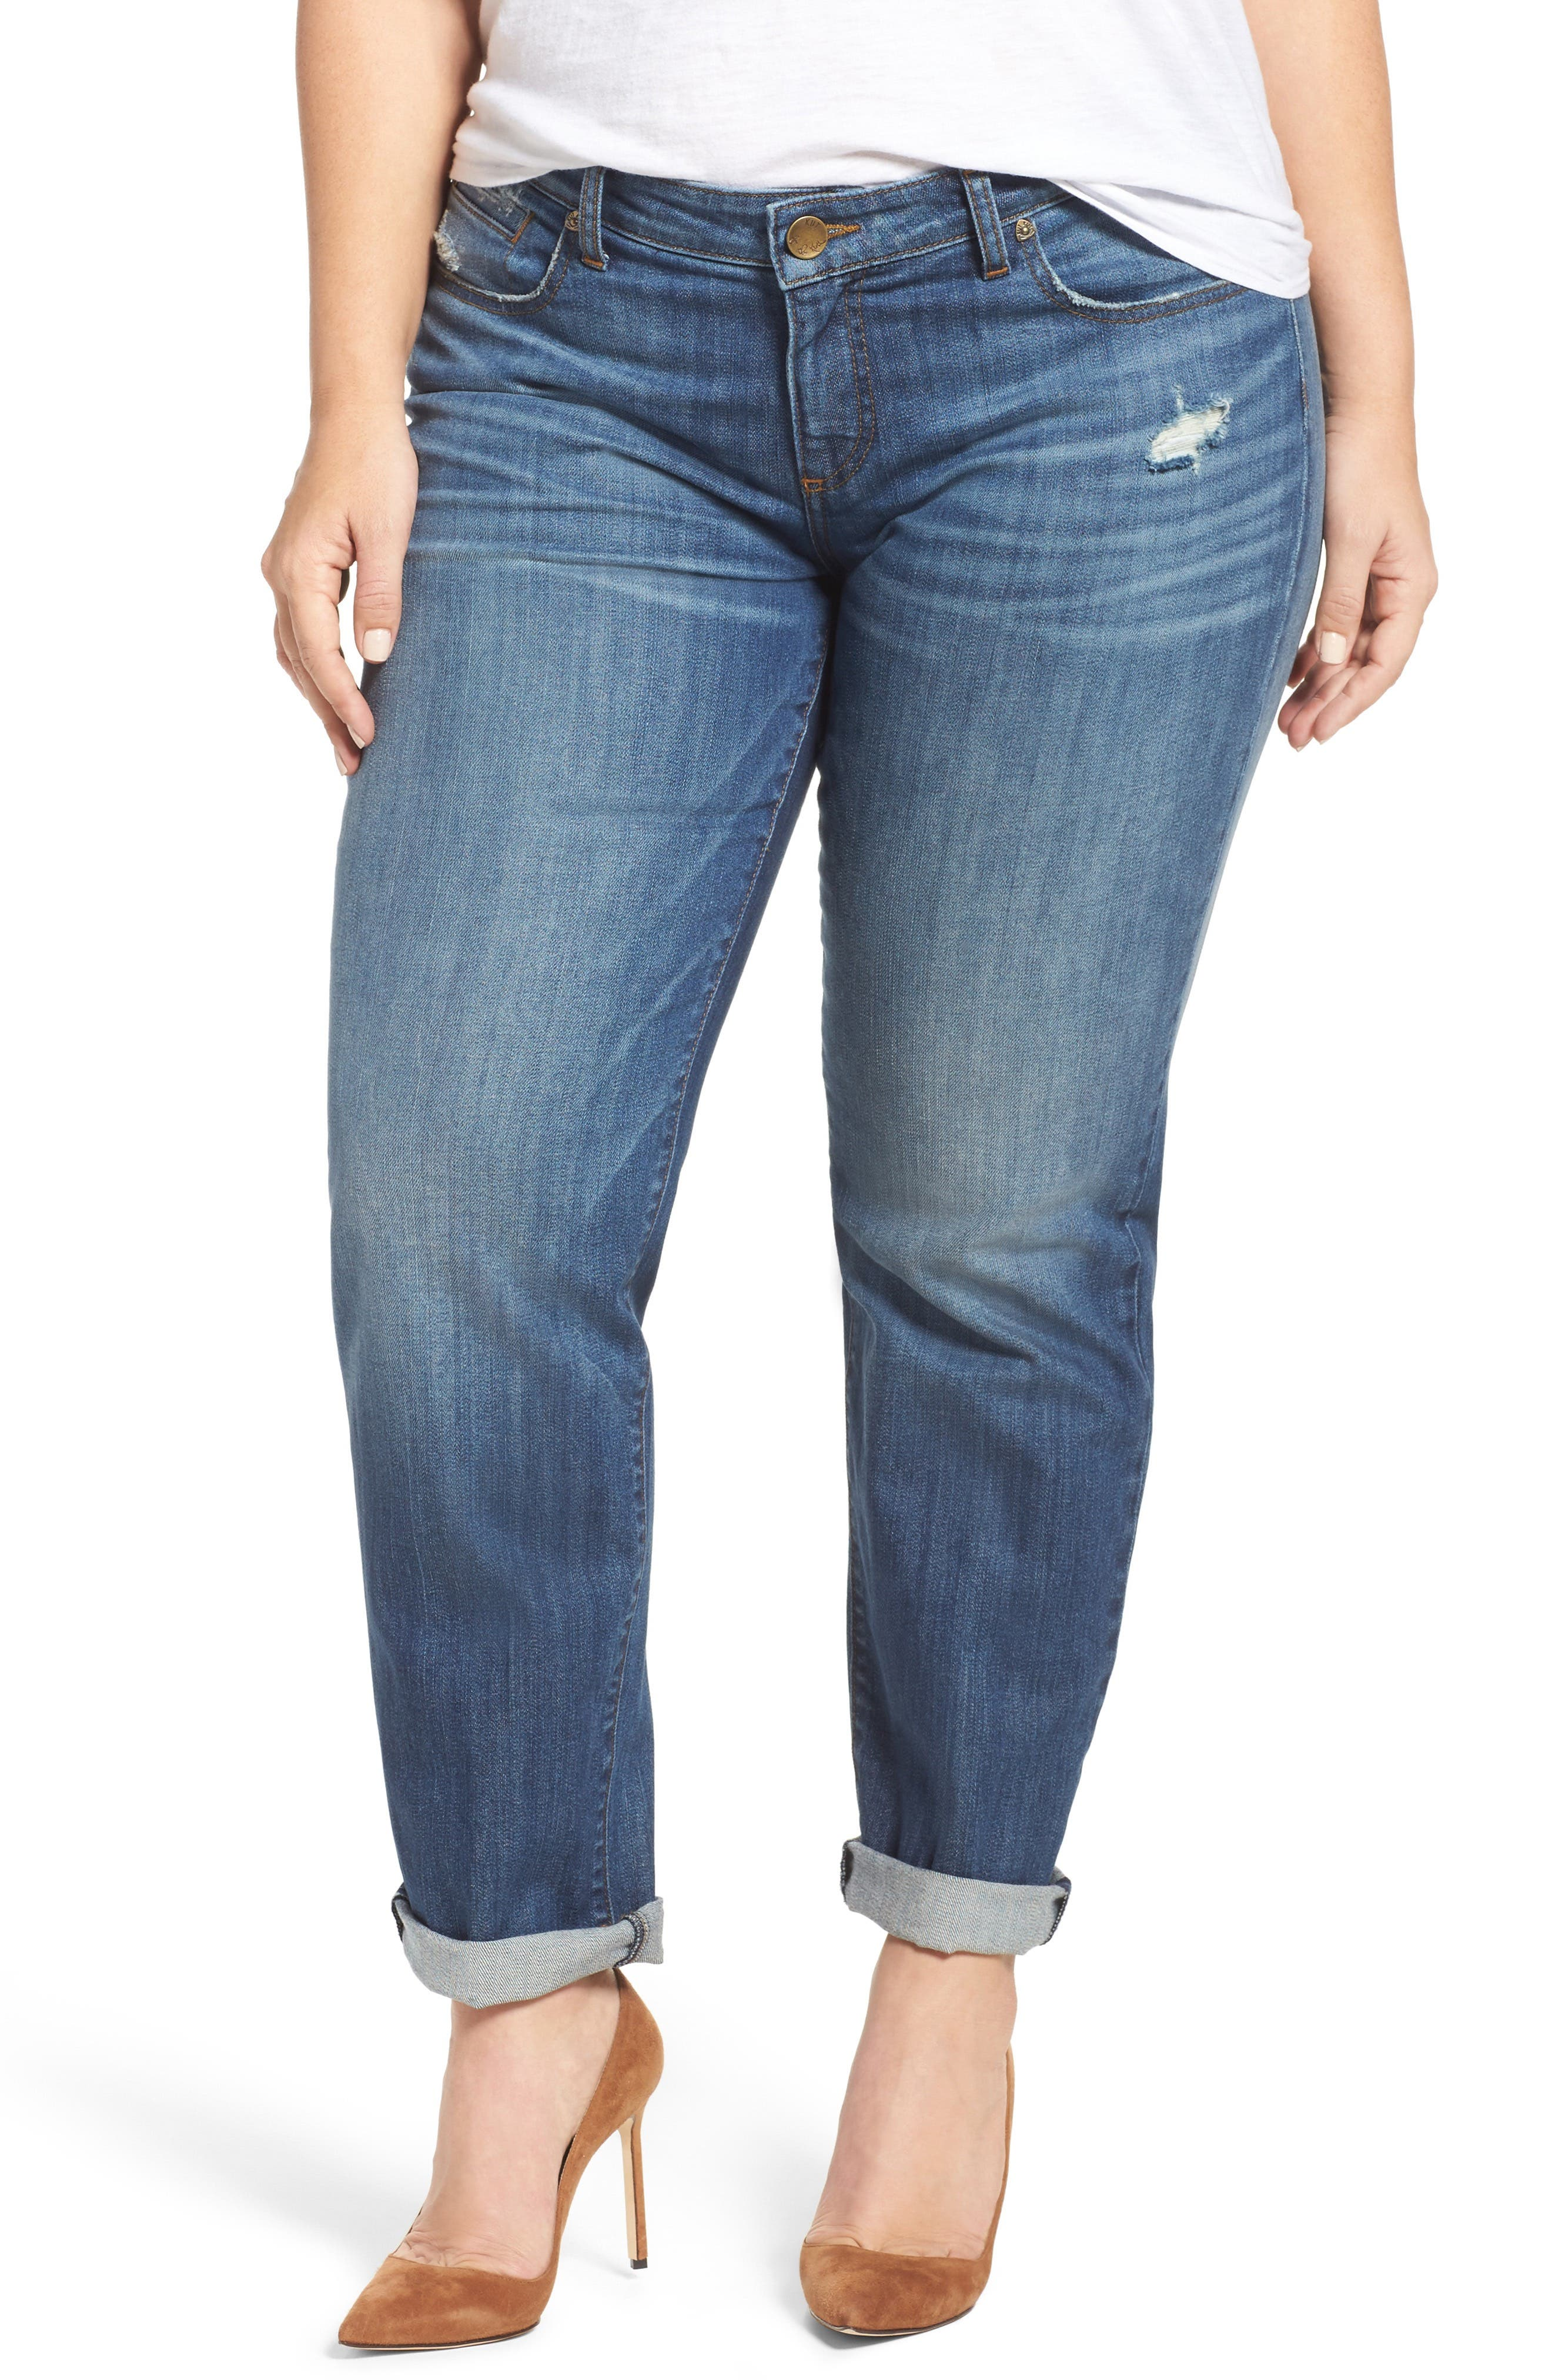 Alternate Image 1 Selected - KUT from the Kloth Catherine Boyfriend Jeans (Doubtless) (Plus Size)